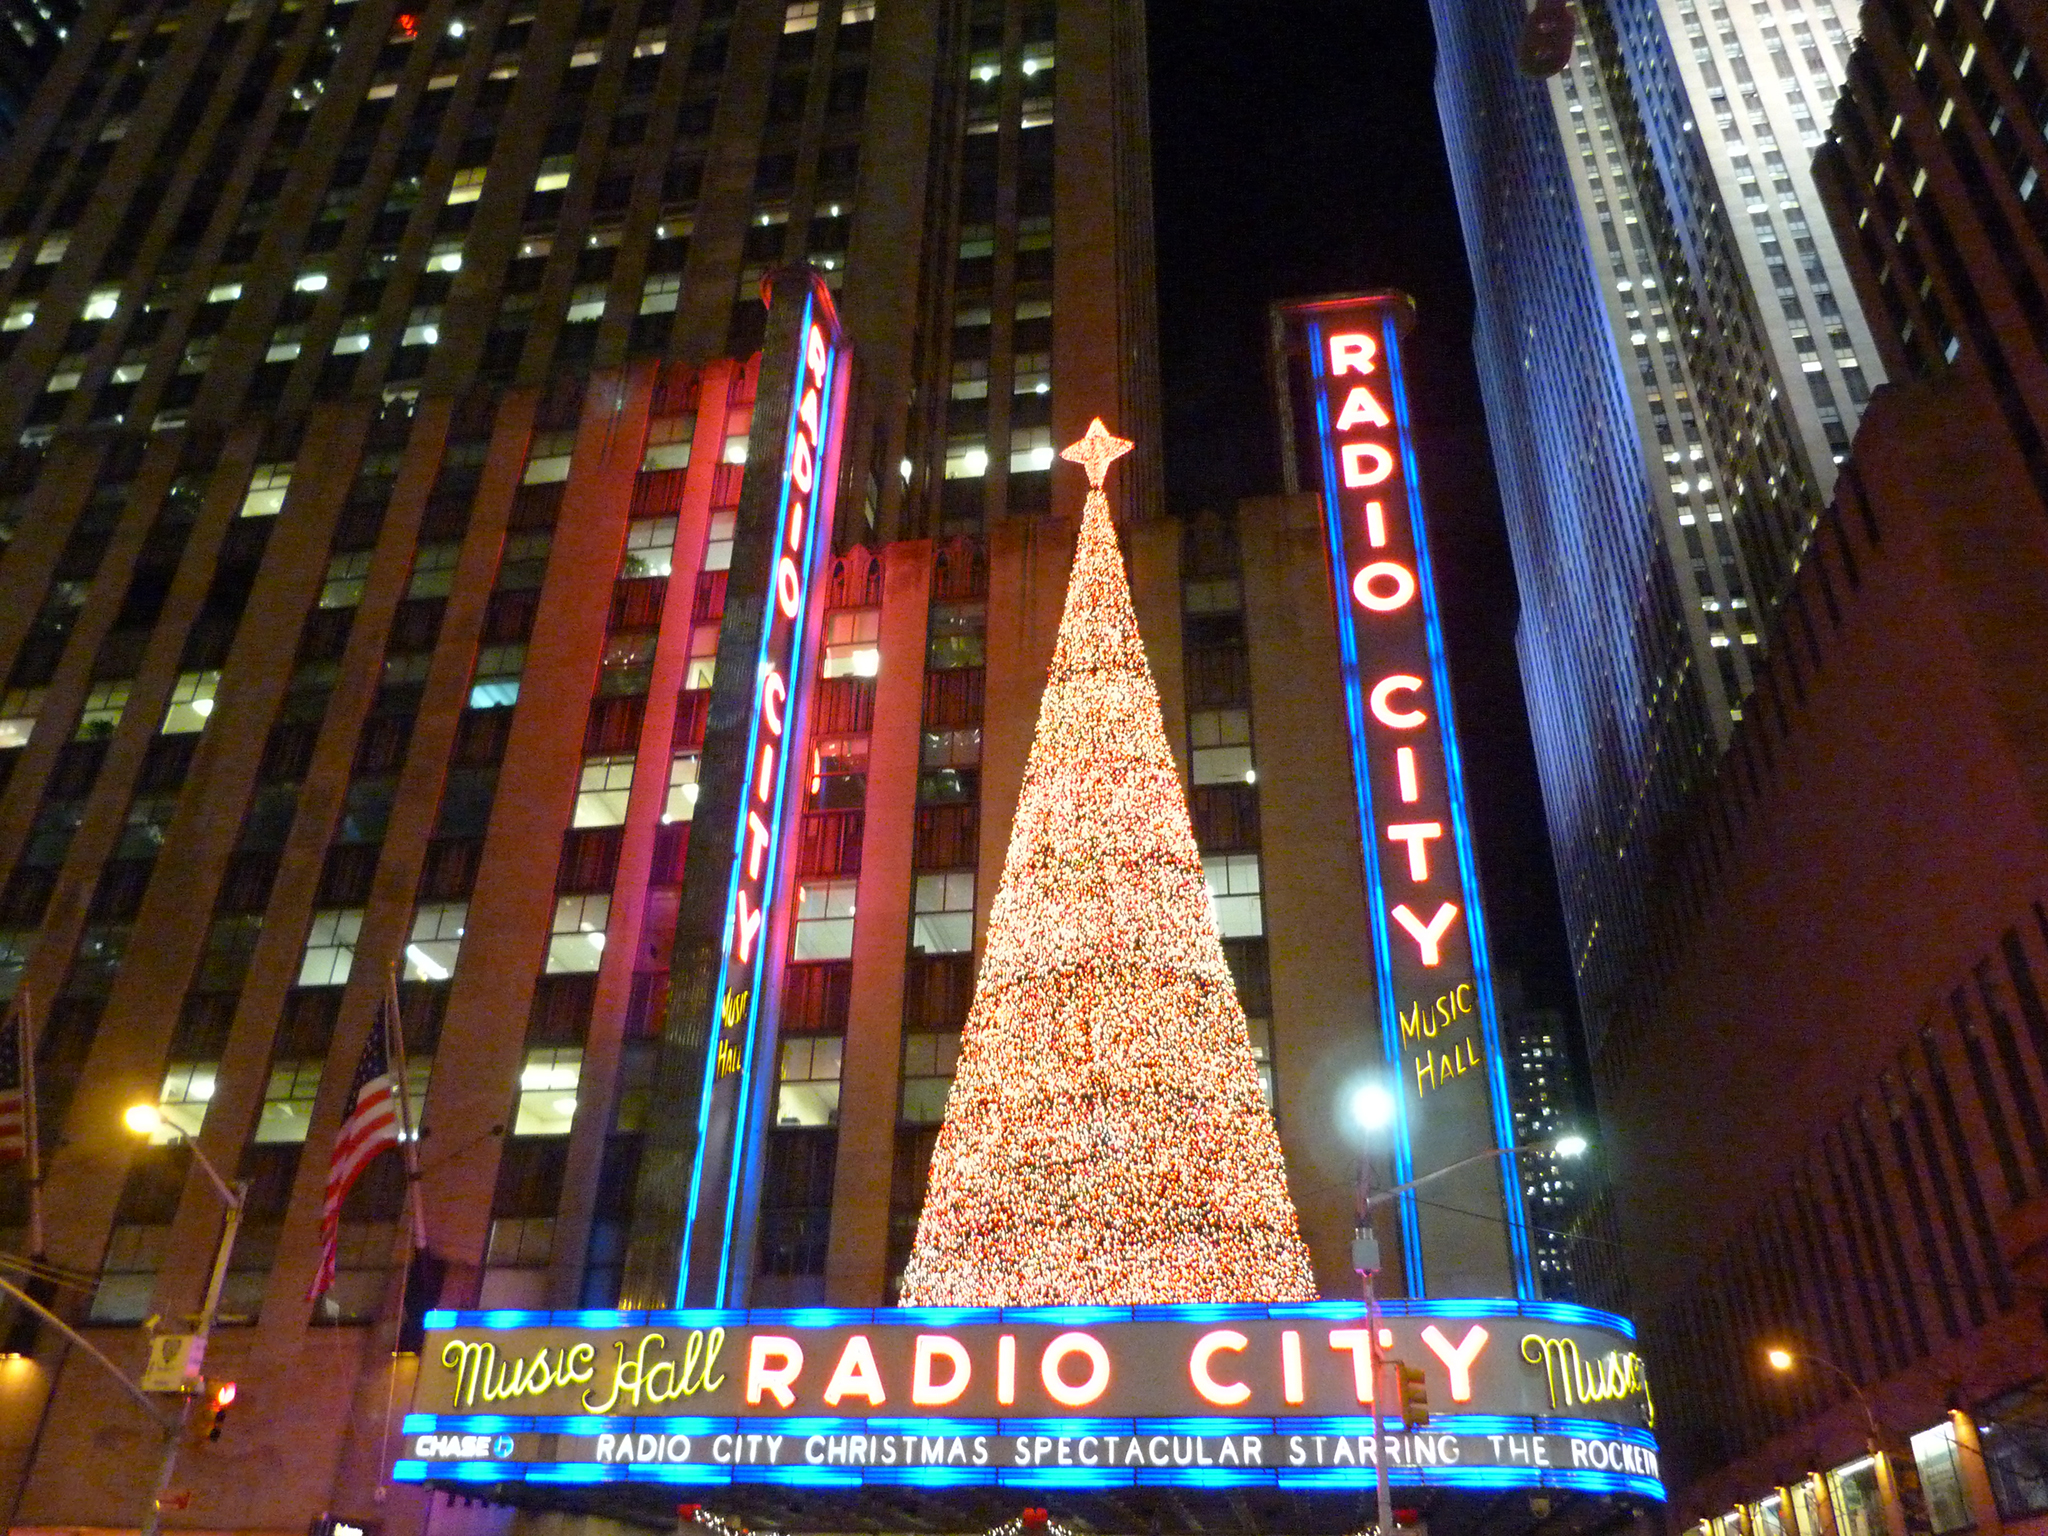 61 Days To Christmas Top 10 Places To Visit In New York City 3 days to christmas 61 Days To Christmas: Top 10 Places To Visit In New York City 🎄 61 Days To Christmas Top 10 Places To Visit In New York City 3